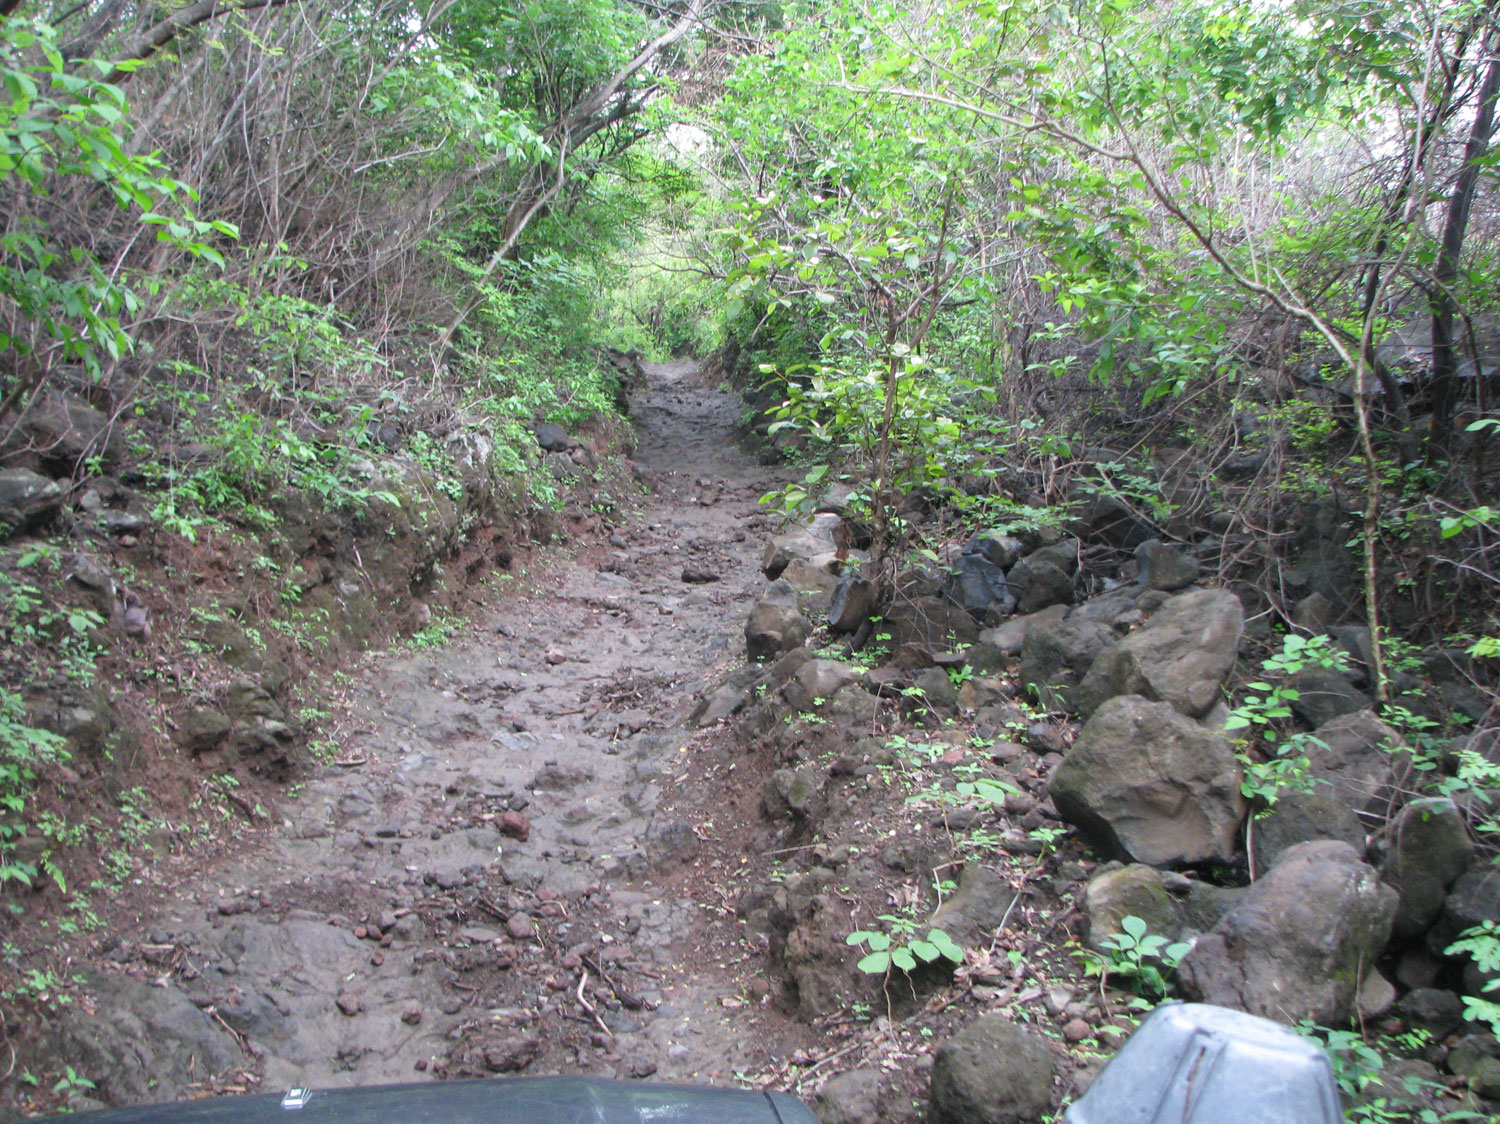 Steep, rocky, muddy - no problem for the Toyota Landcruiser!